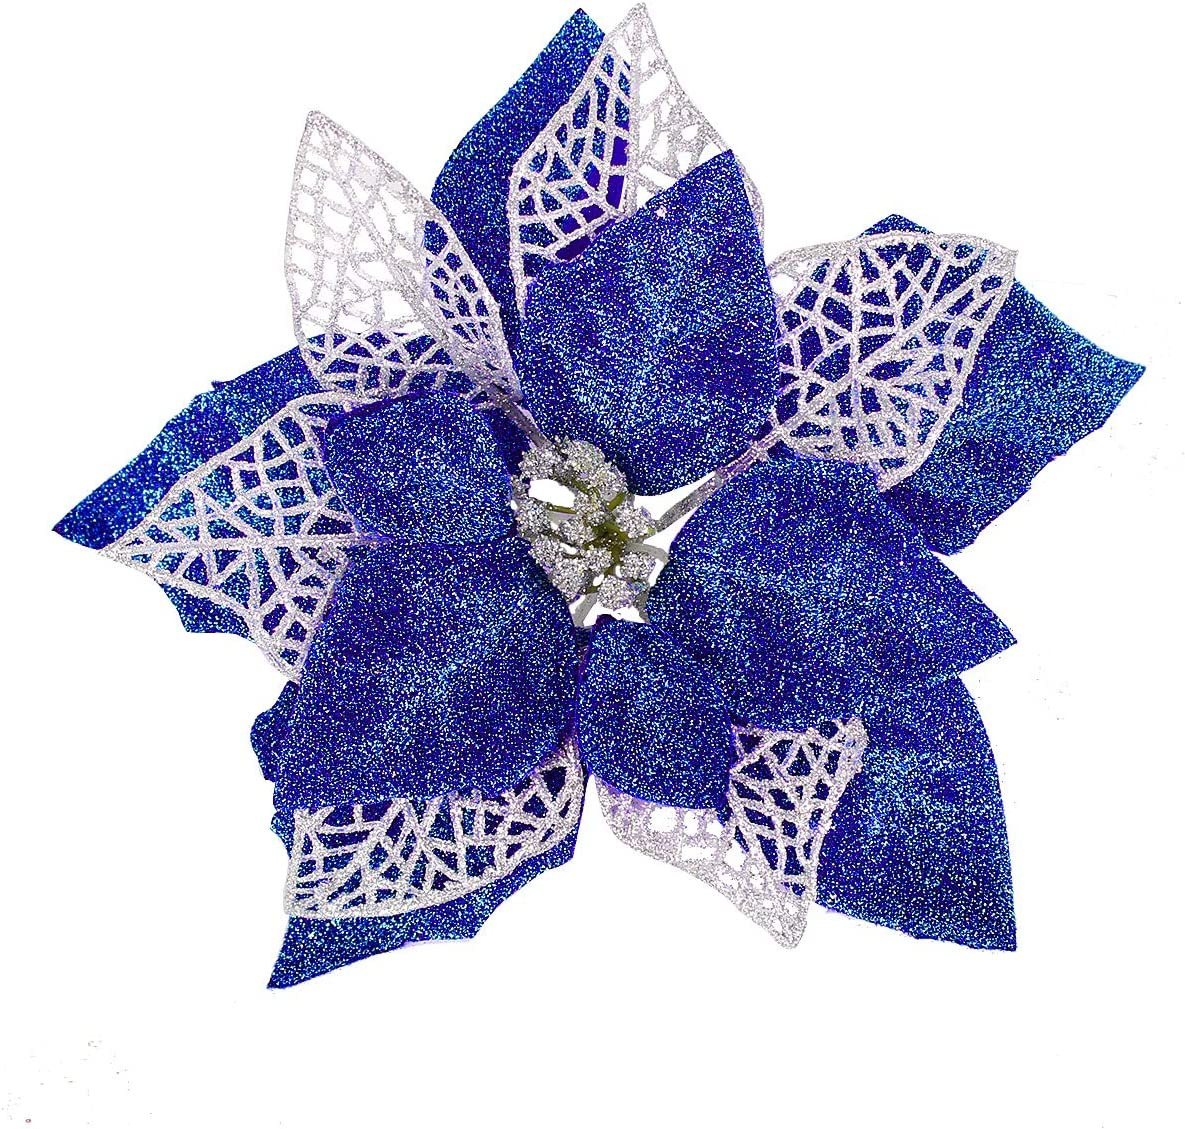 Jim's Cabin Artificial Flowers Pack Poinsettias 12 Sales for sale Bombing free shipping of fo Glitter